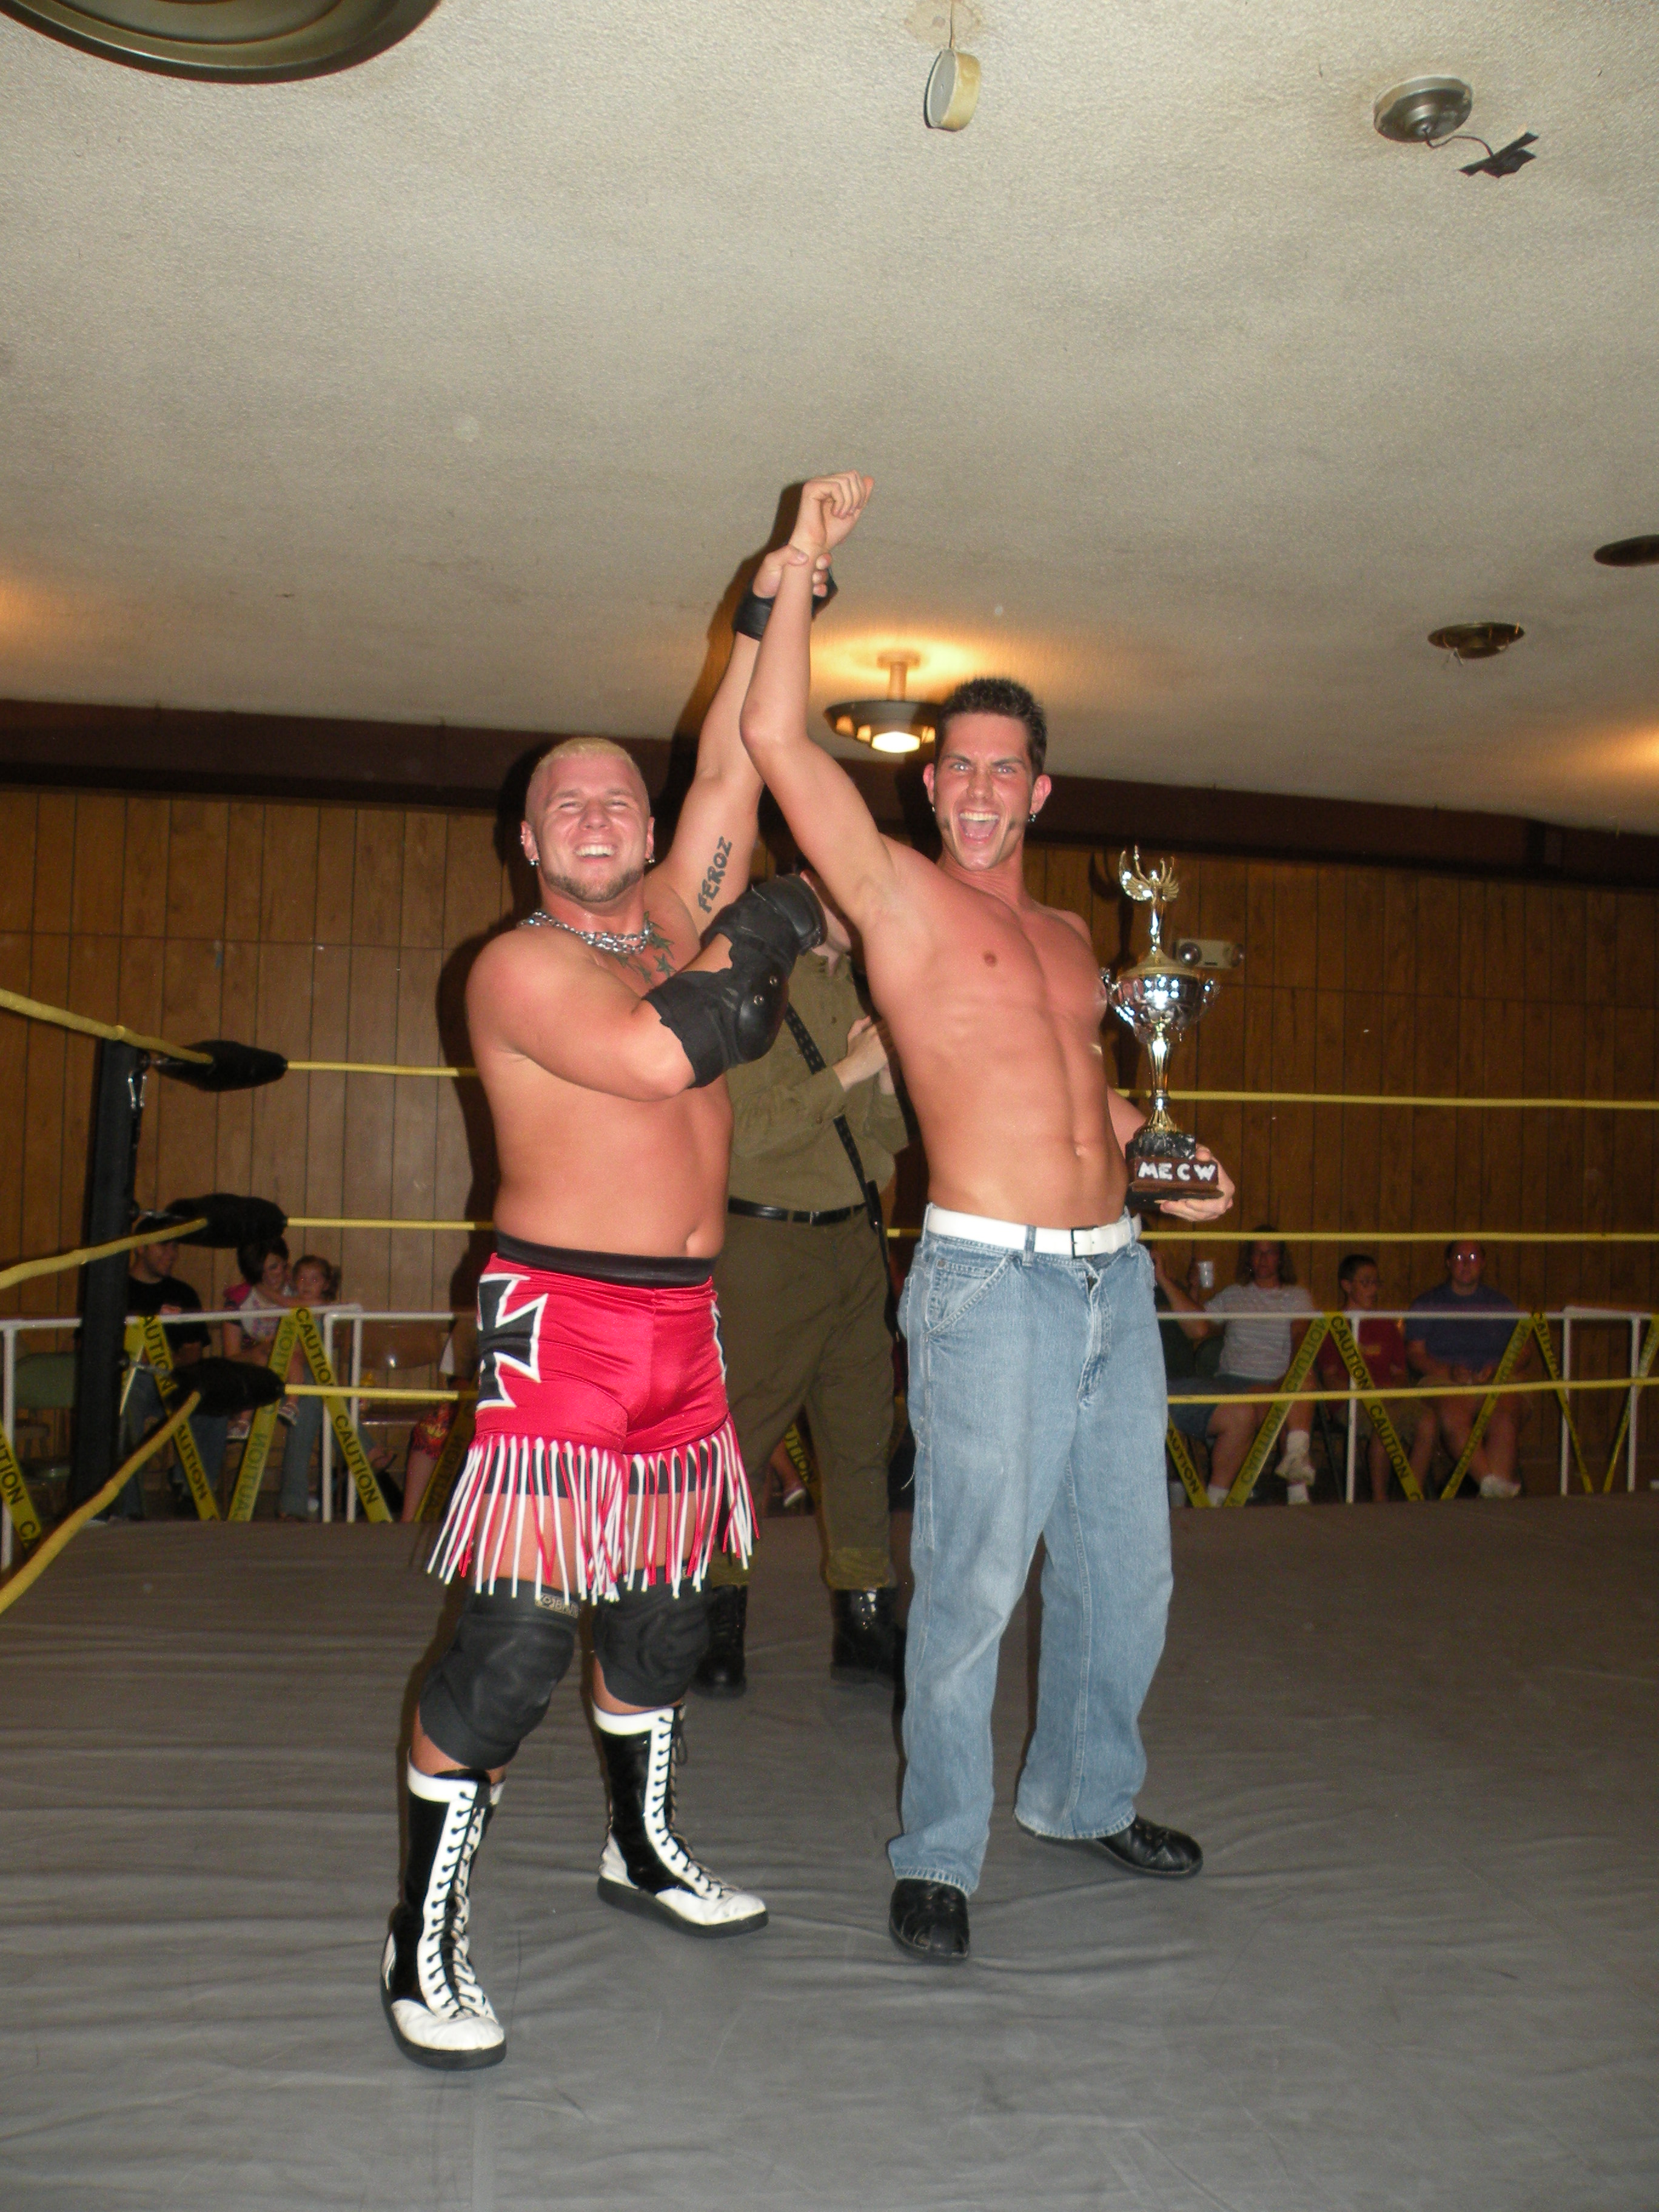 Bailey Mannix celebrates with the first ever MECW Great Plains Trophy Battle Royal Champion Ryan Slade